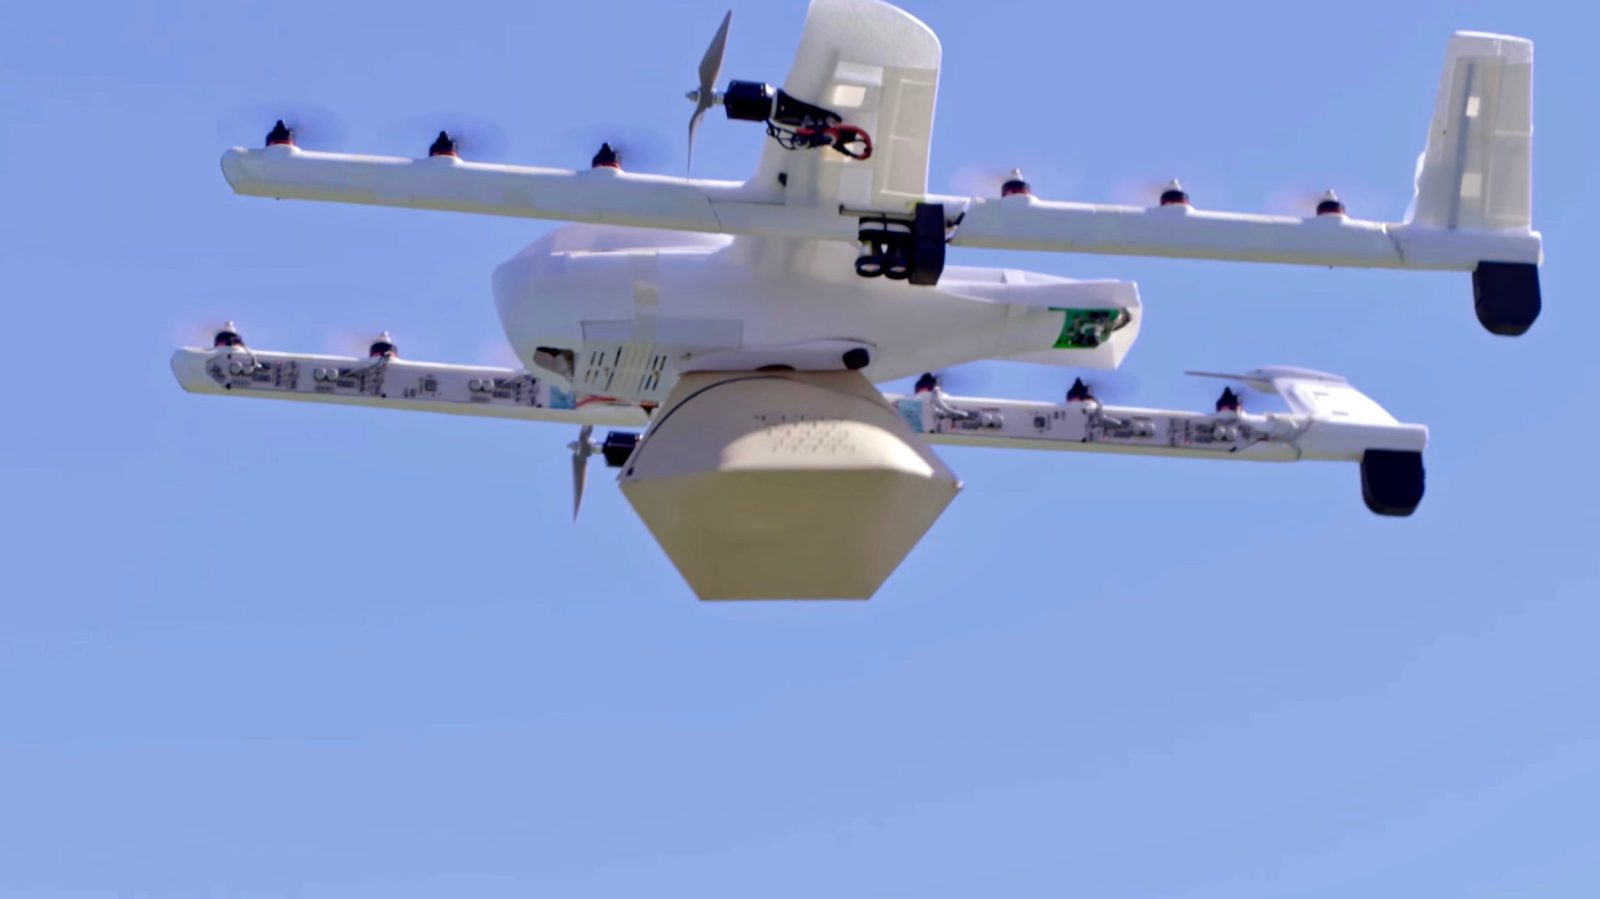 Drone Delivery Services Market Dynamics, Segments, Demand and Supply 2017-2027